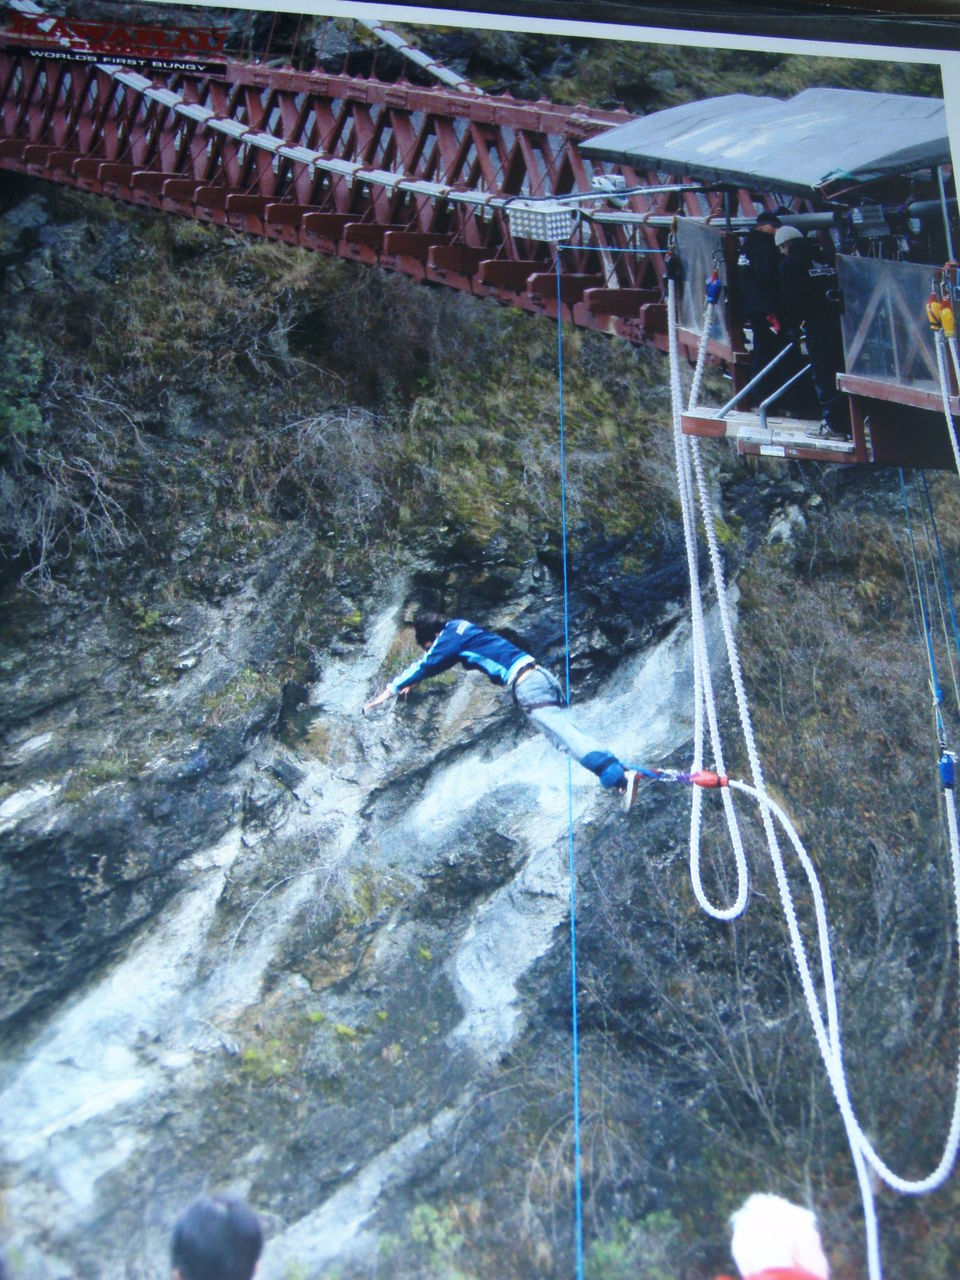 High Angle View Of Man Bungee Jumping Over Rock Formation In Sea